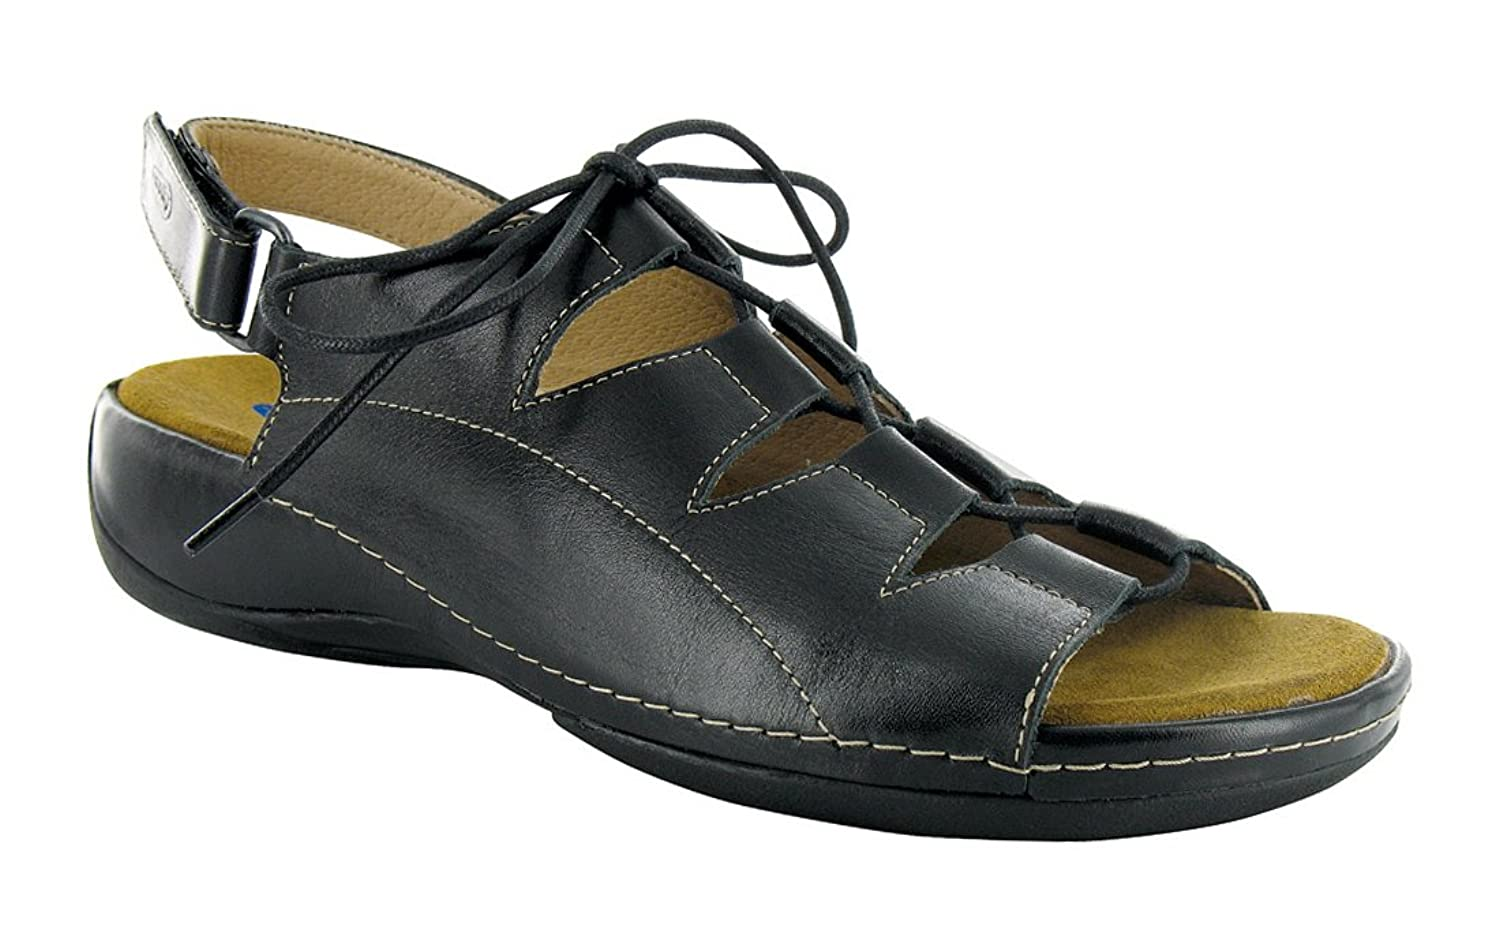 38 Wolky Black Smooth Leather Size Women's Kite outlet